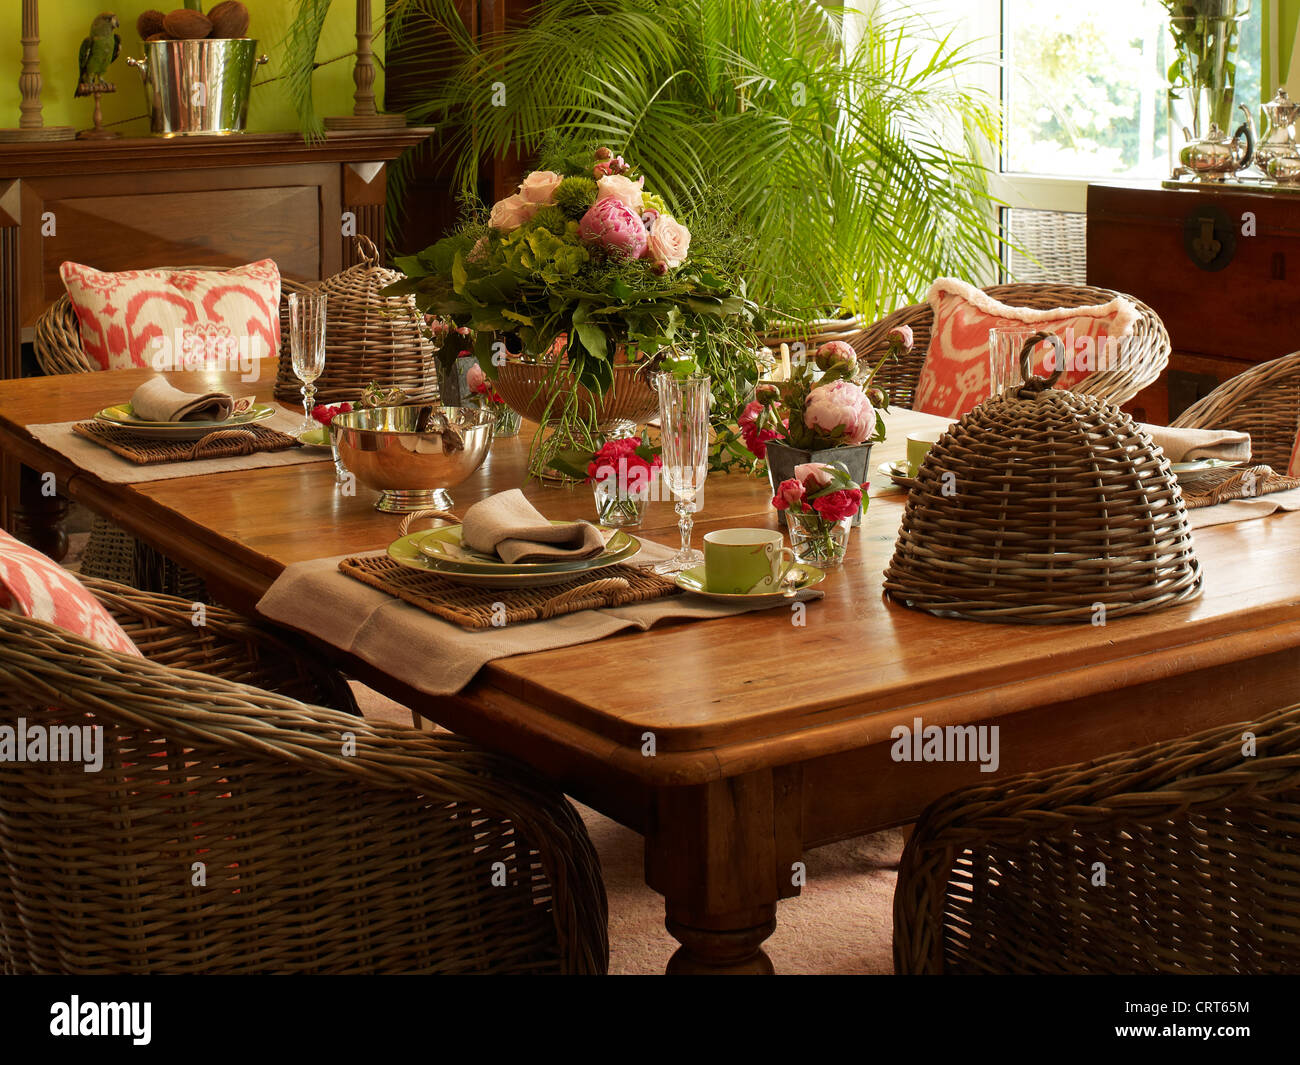 classy ,well-laid table - Stock Image